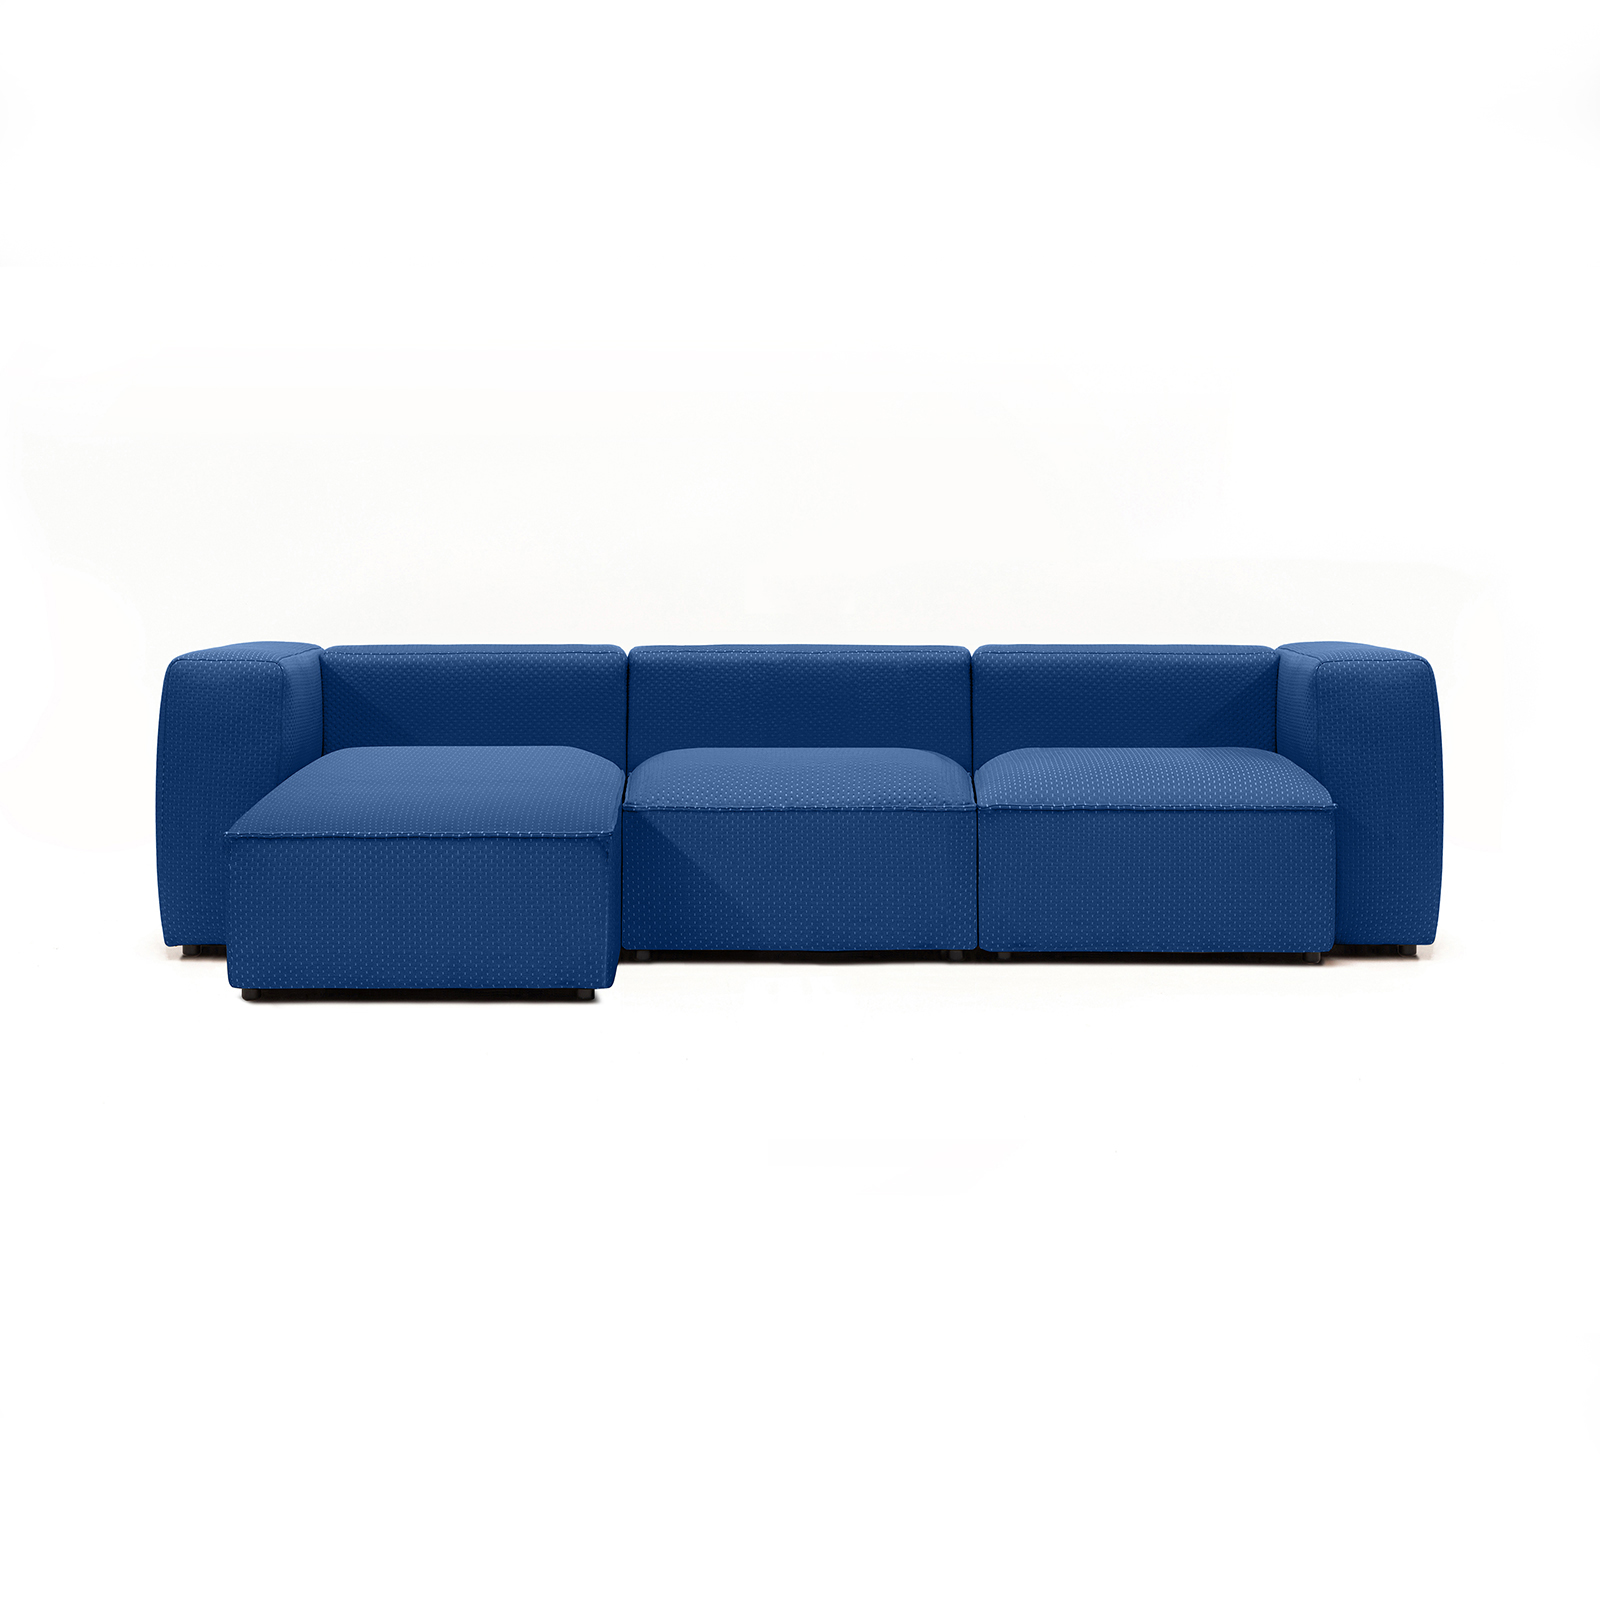 Permanent Future Easey Sofa 3 Seater Sectional Short Left Zoom Electric Pf Sf Ea X3s L Ze Front View